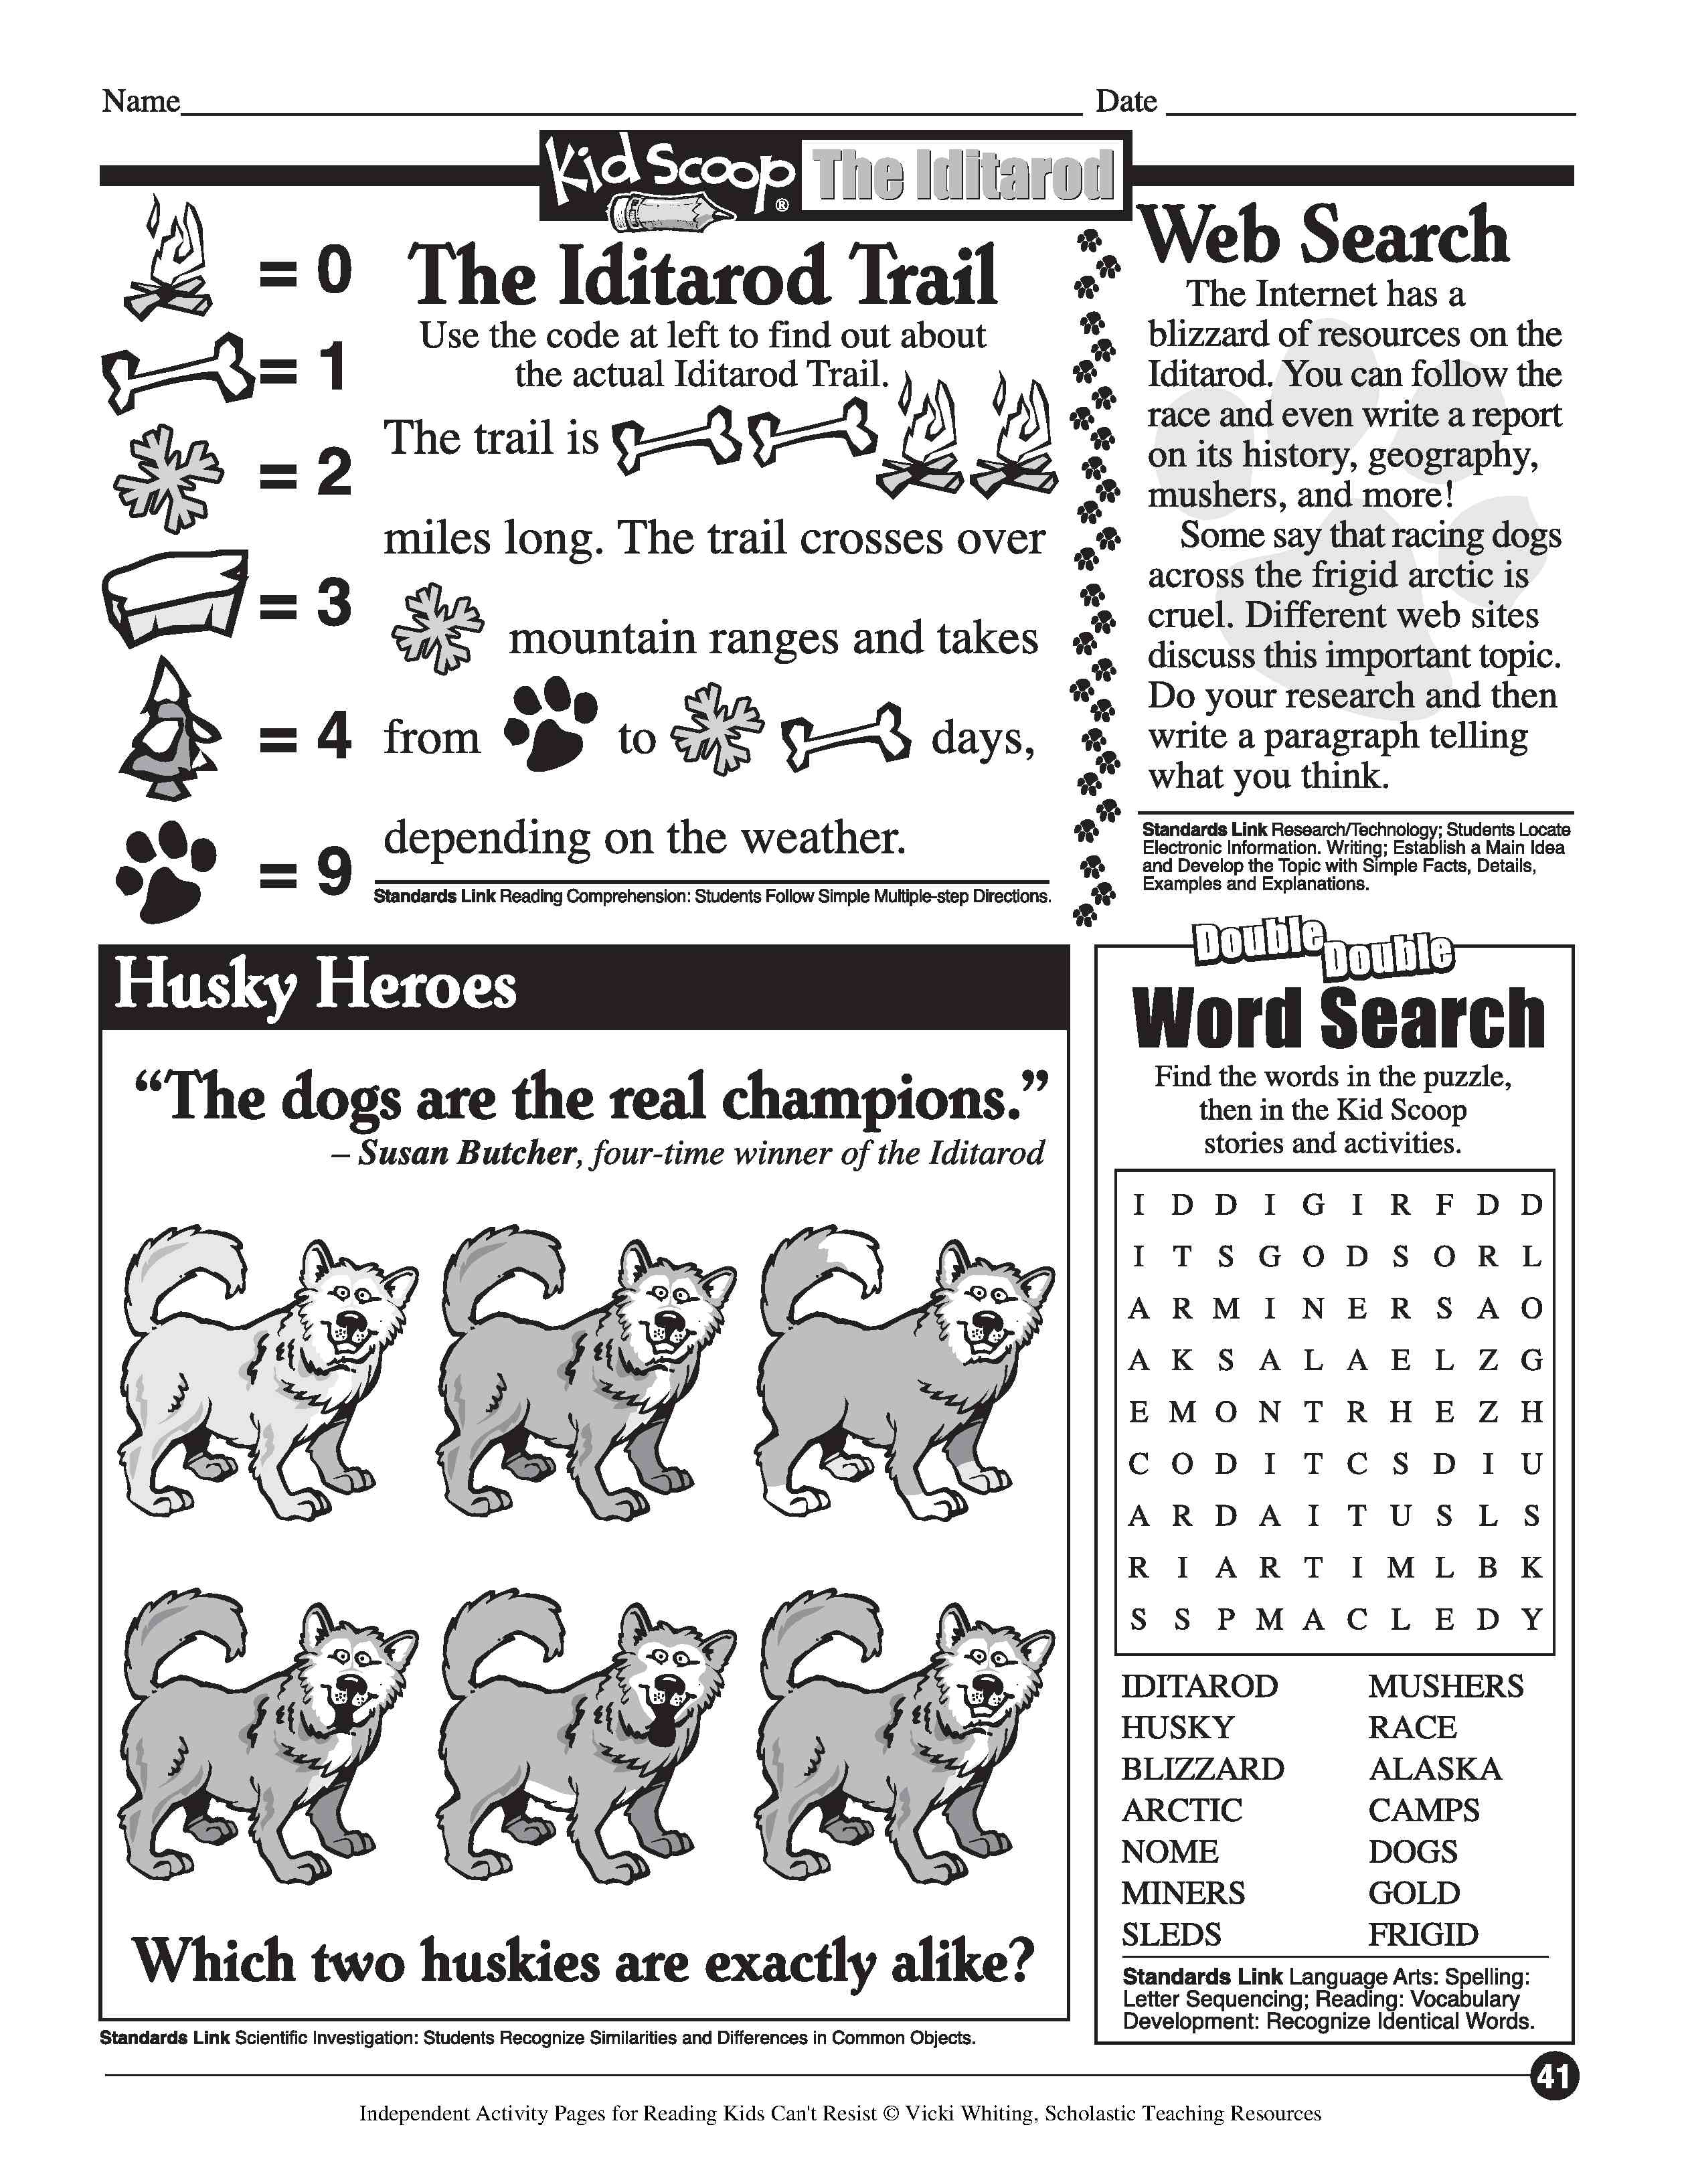 Learn About Sledding Sled Dogs And The Iditarod